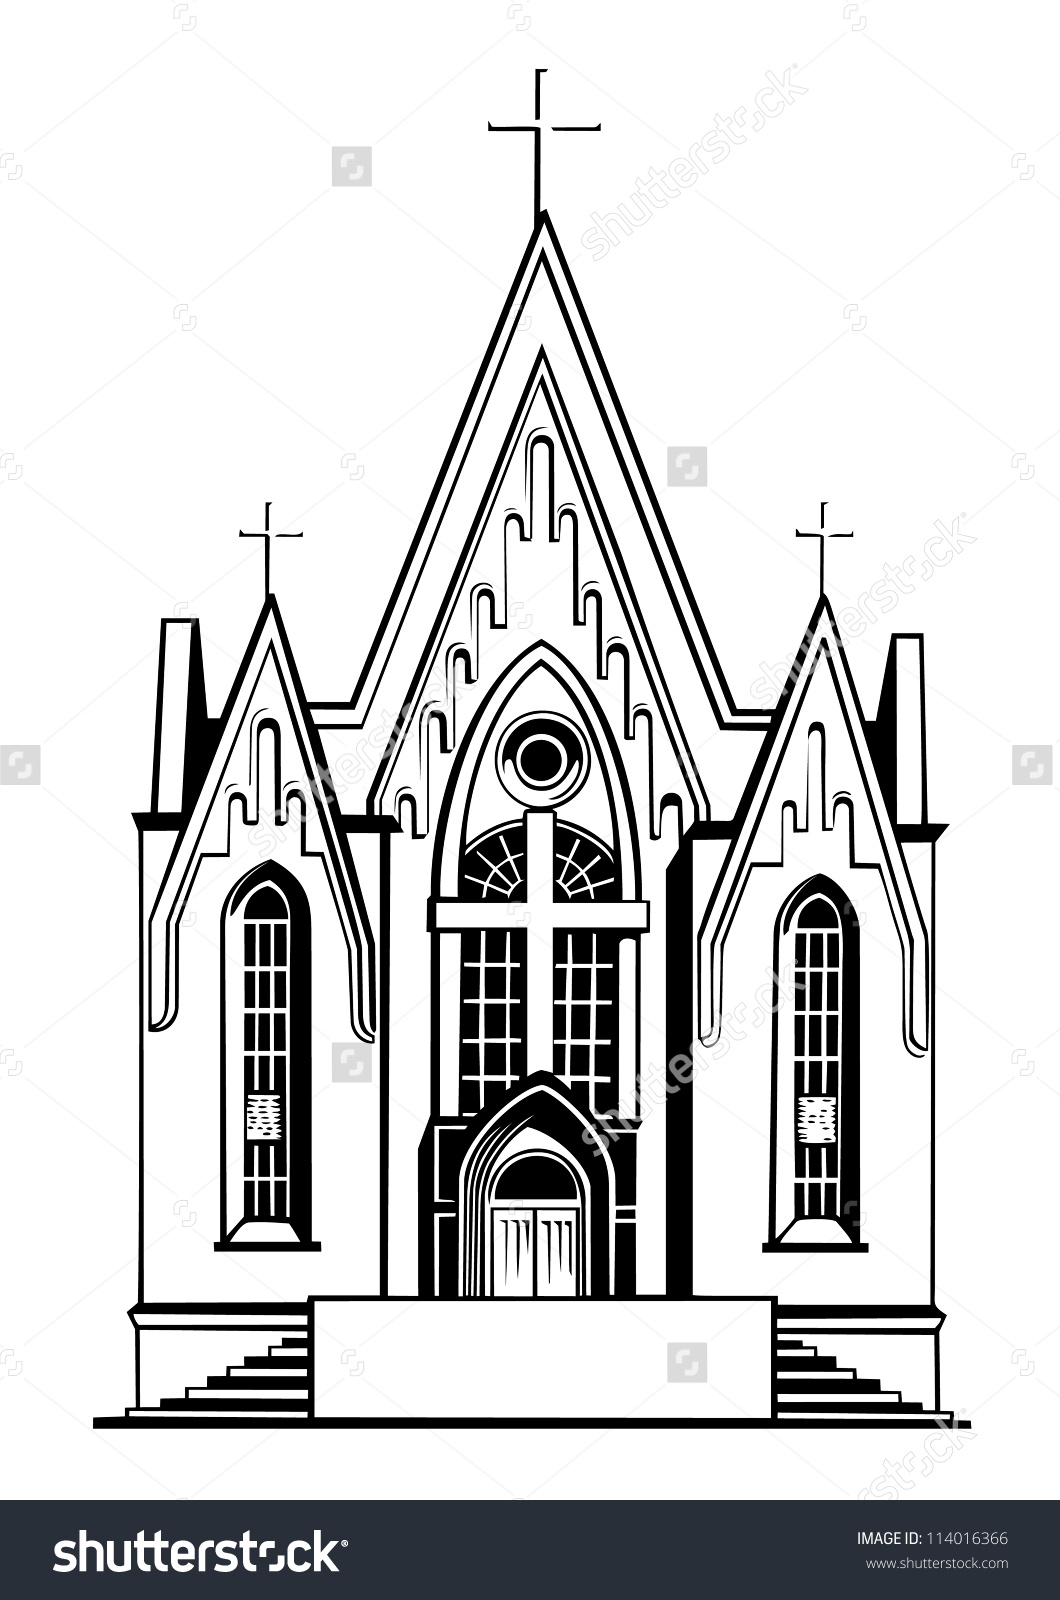 hight resolution of church clipart